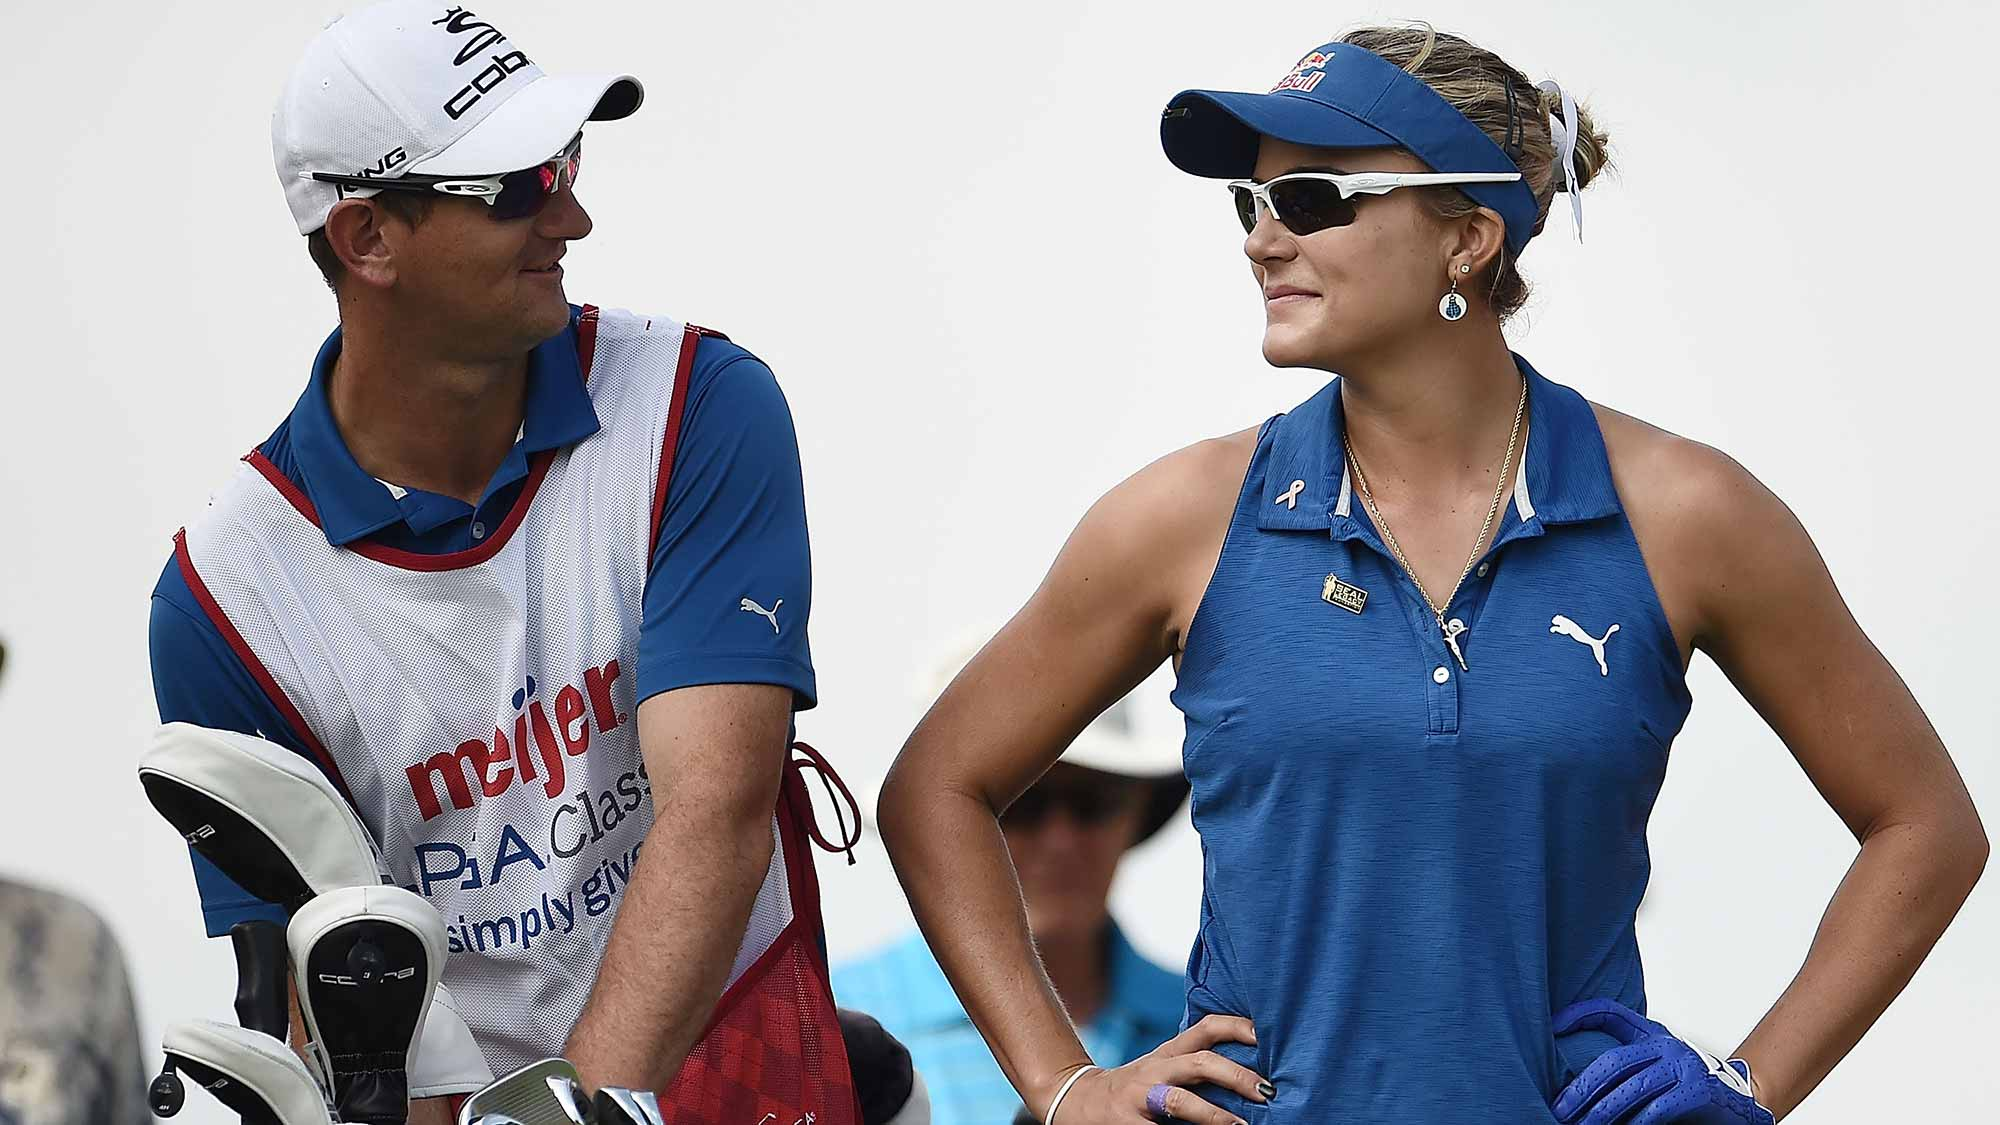 Lexi Thompson speaks with her caddie on the 15th tee during the first round of the Meijer LPGA Classic at Blythefield Country Club